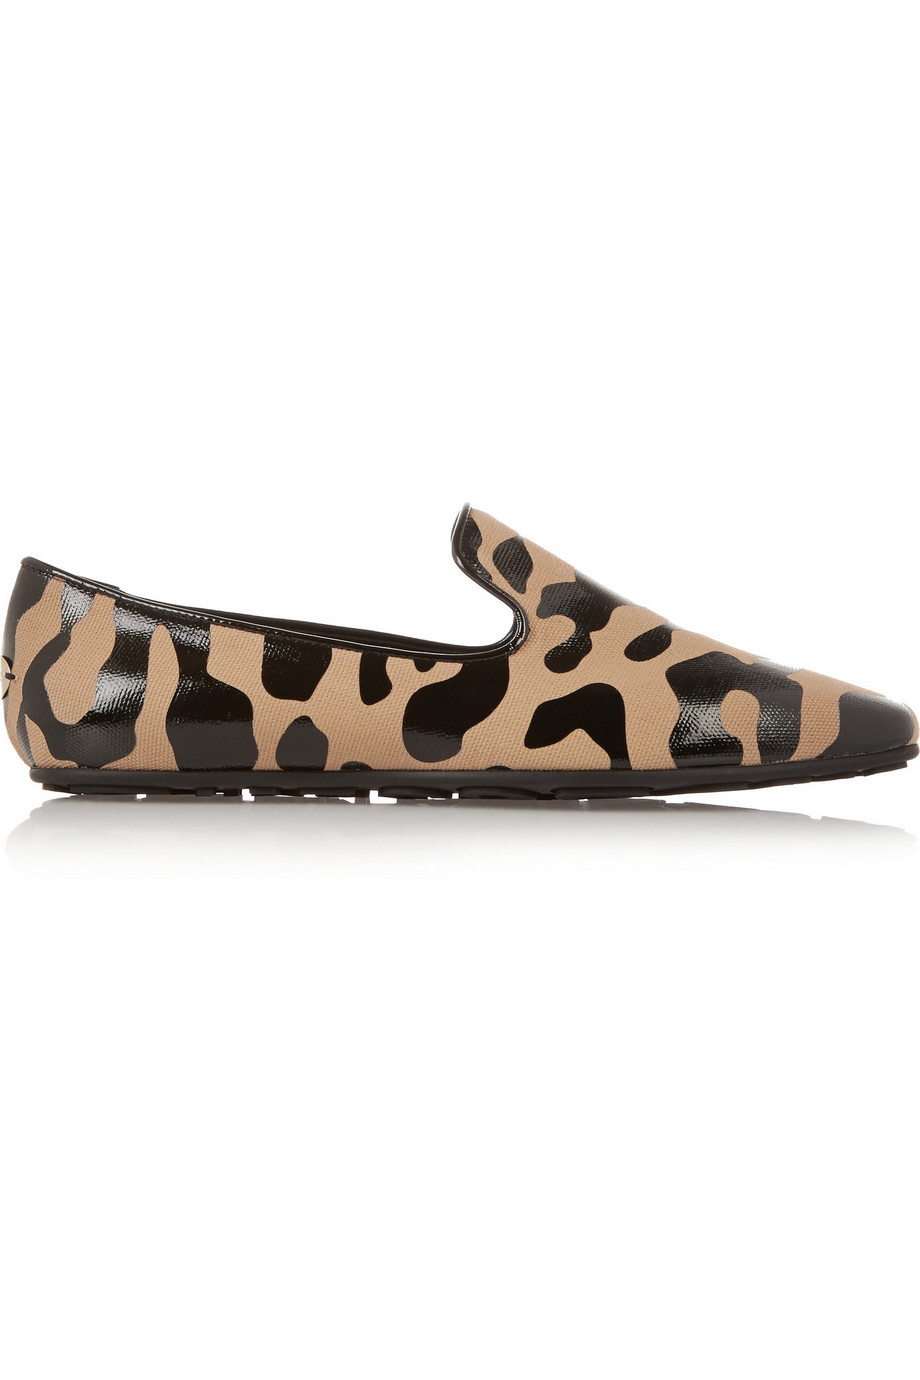 Jimmy Choo Wheel Leopard-Print Canvas Slippers, Leopard Print, Women's US Size: 4.5, Size: 35